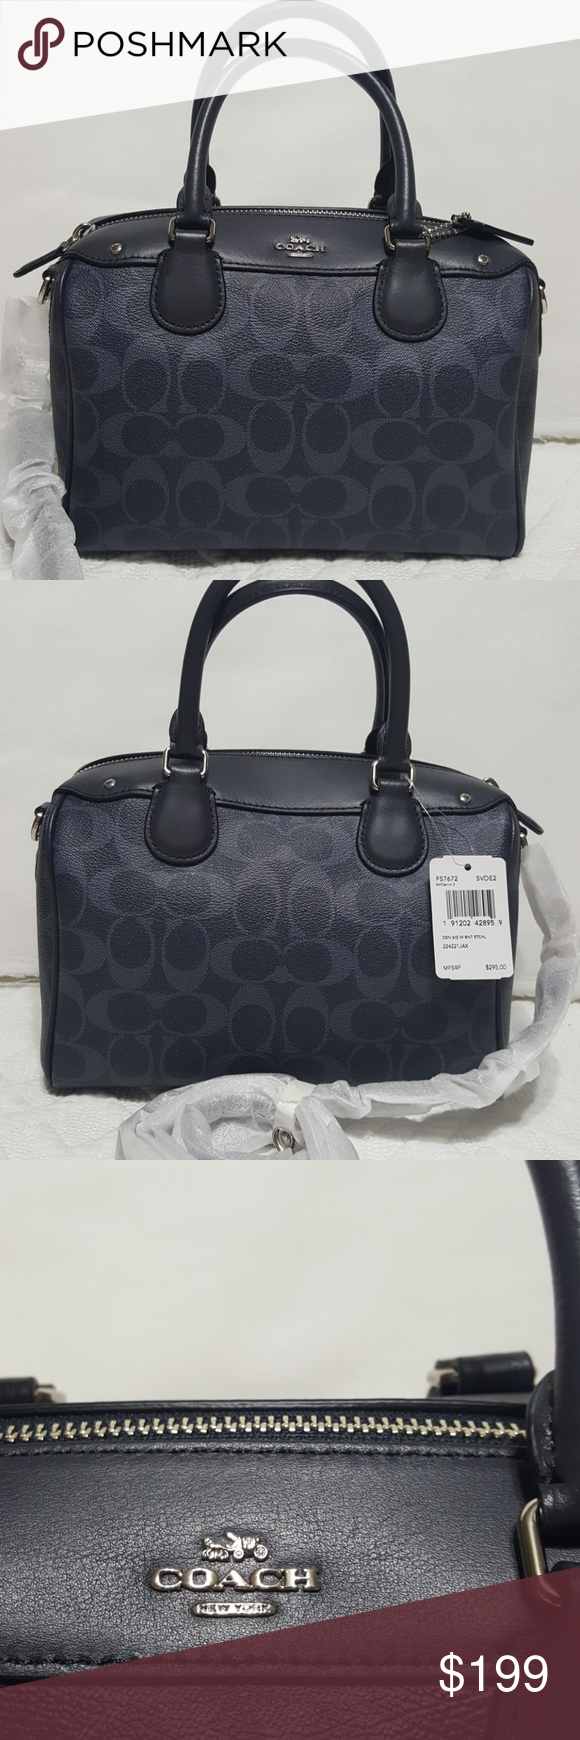 NWT 👜COACH 👜 New with tags Authentic Coach Leather denim